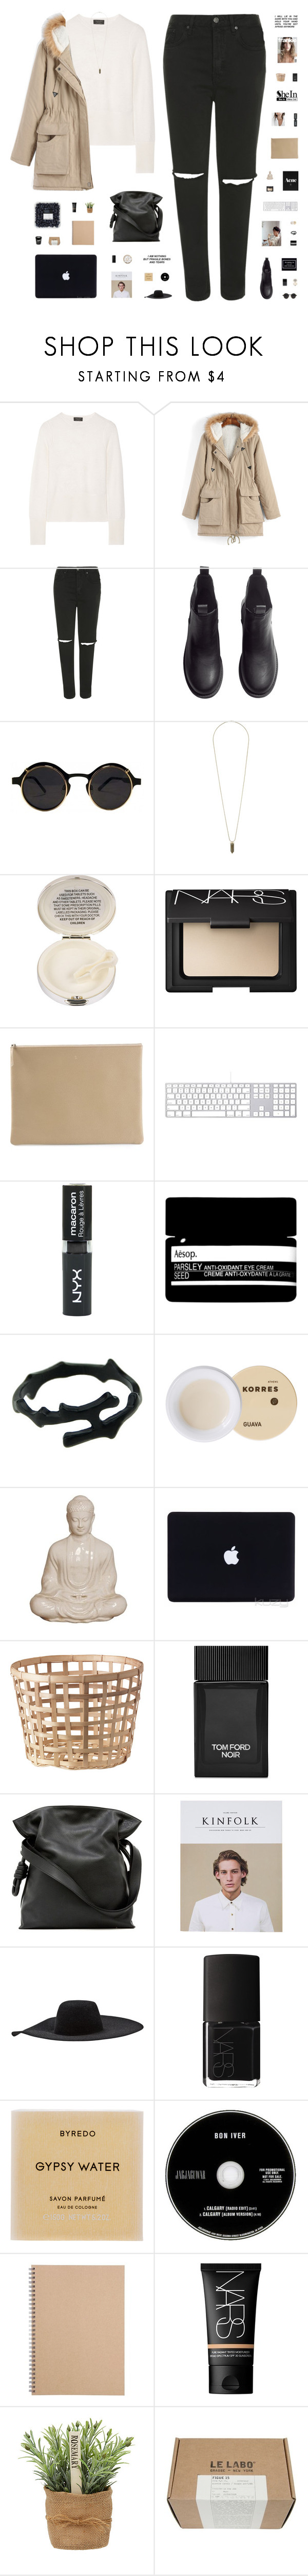 """""""BASE"""" by c-hristinep ❤ liked on Polyvore featuring rag & bone, Topshop, H&M, Lulu Guinness, NARS Cosmetics, Arts & Science, Aesop, Korres, Emissary and Tom Ford"""